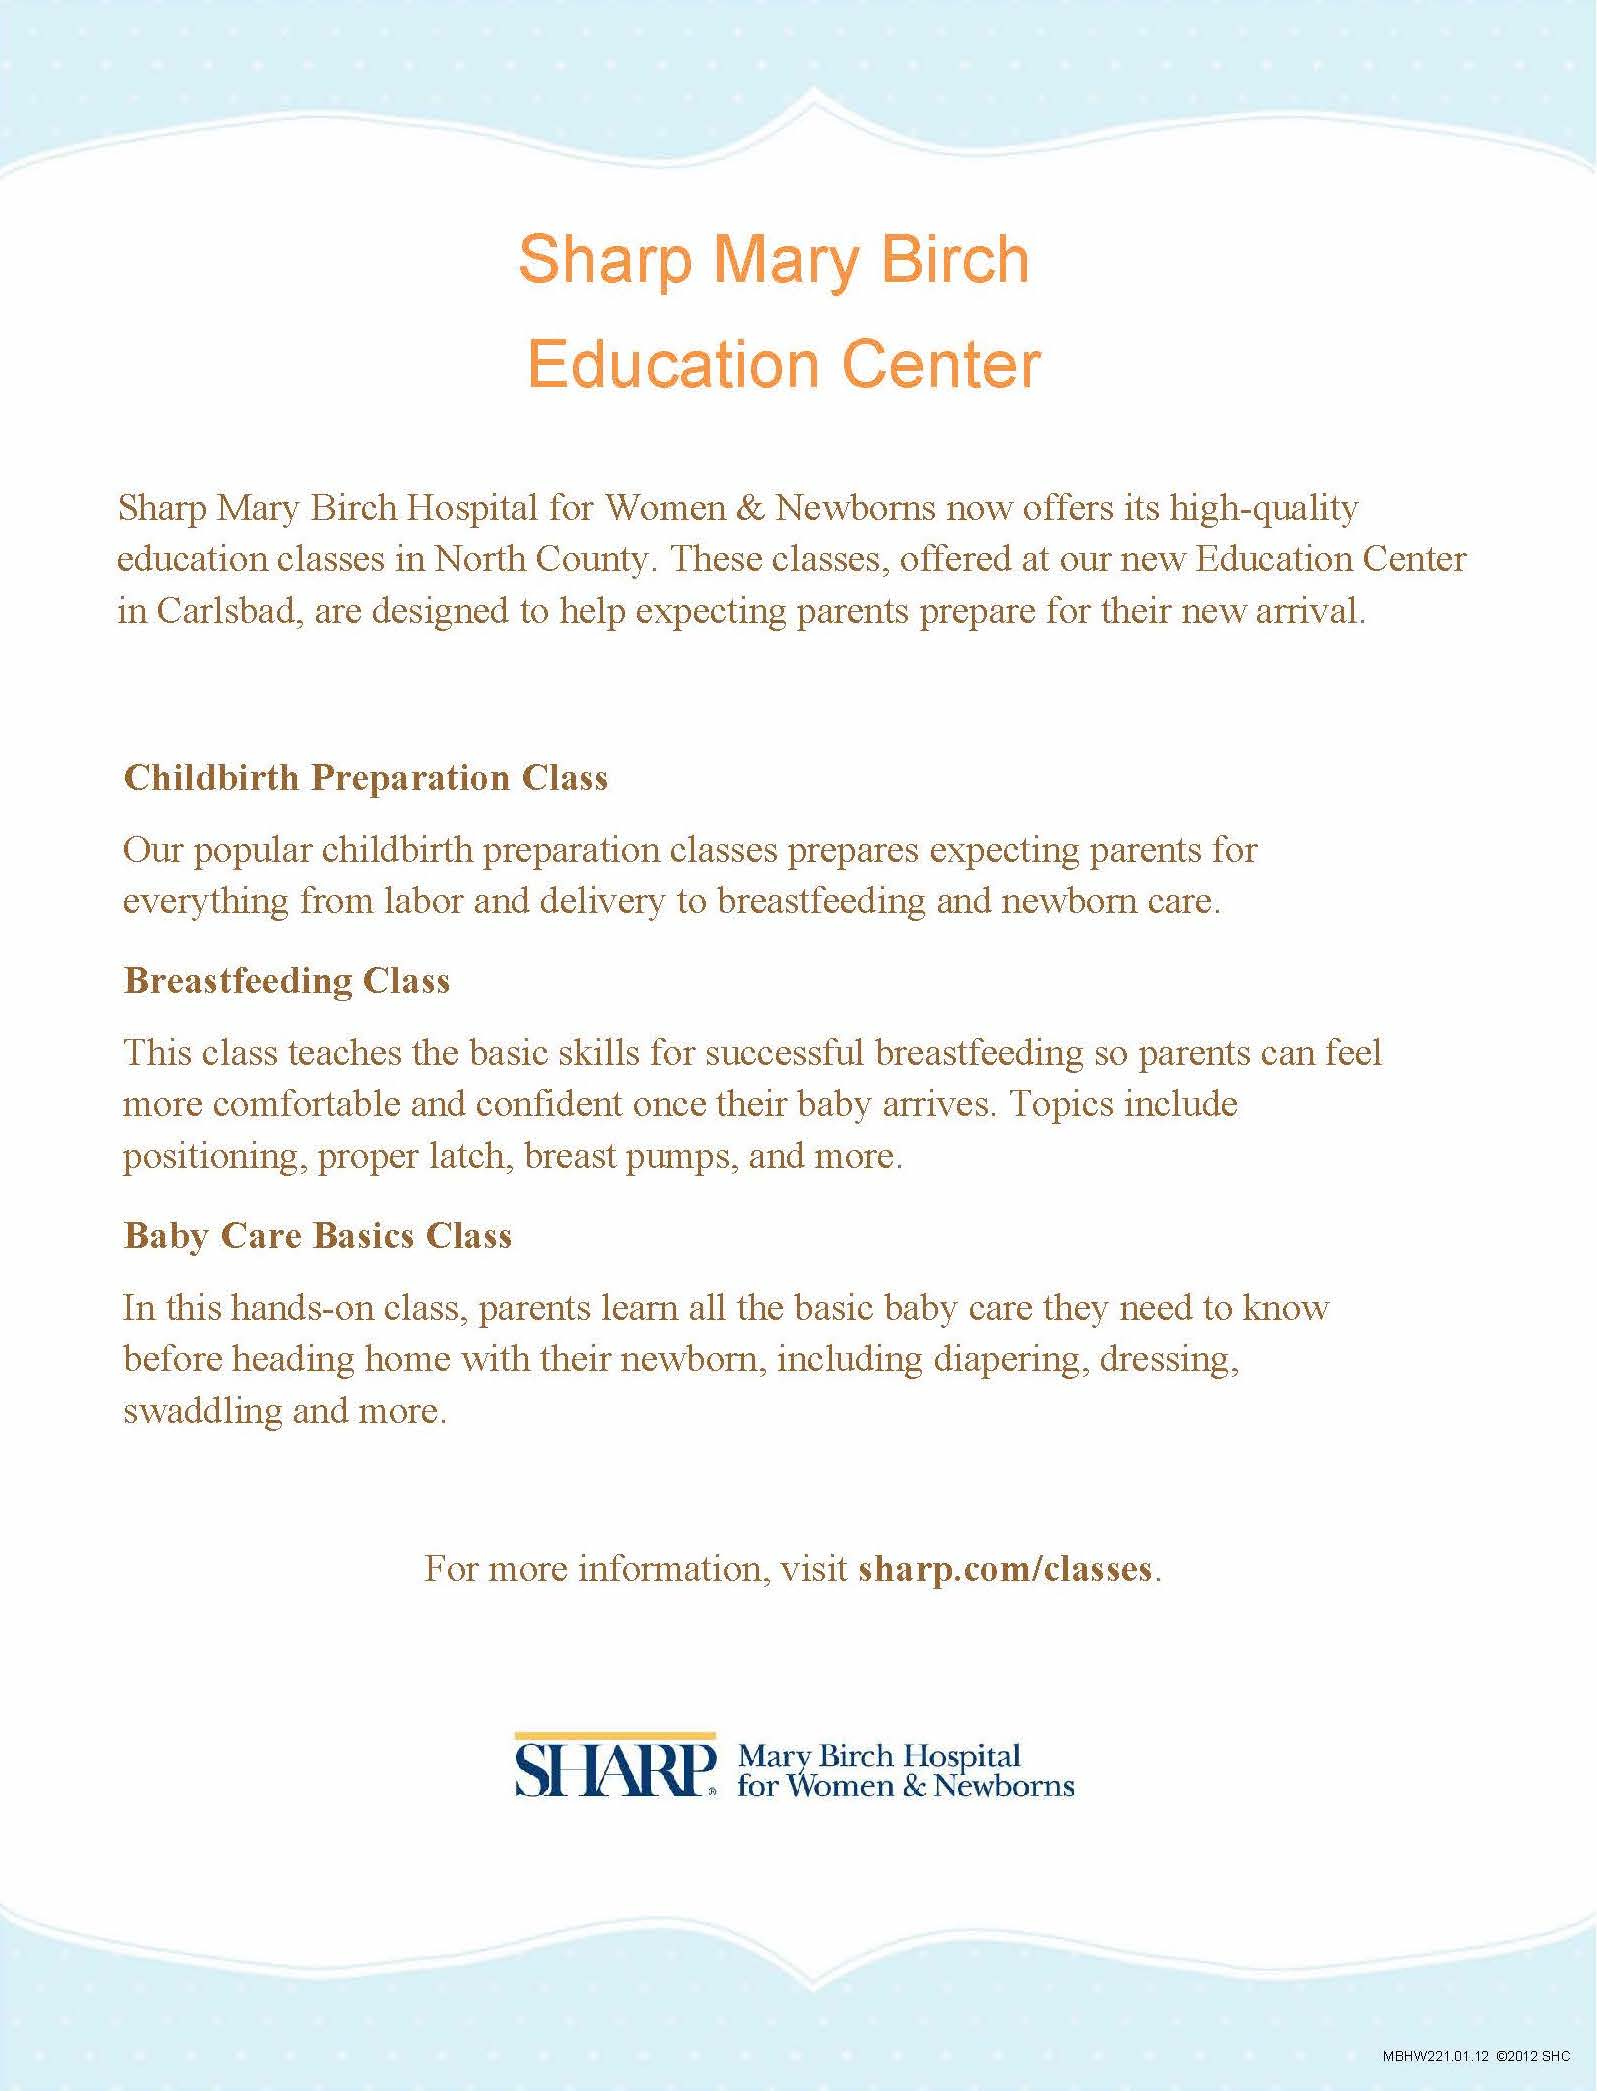 Carlsbad-nextmed-medical-doctor-clinic-med-physician-medcenter-health-center-sharp-classes-pregnancy-breastfeeding-fertilization-IVF